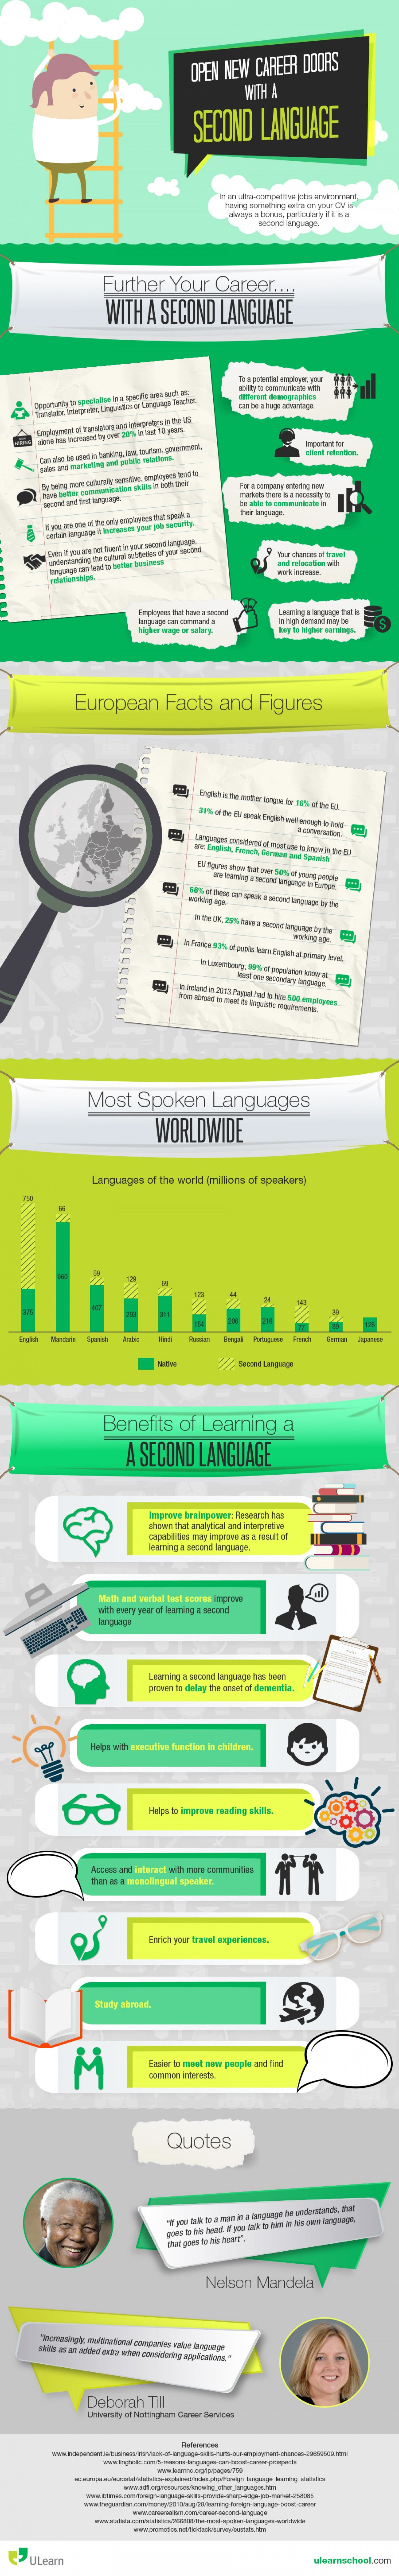 Infographic on second languages educational infographic